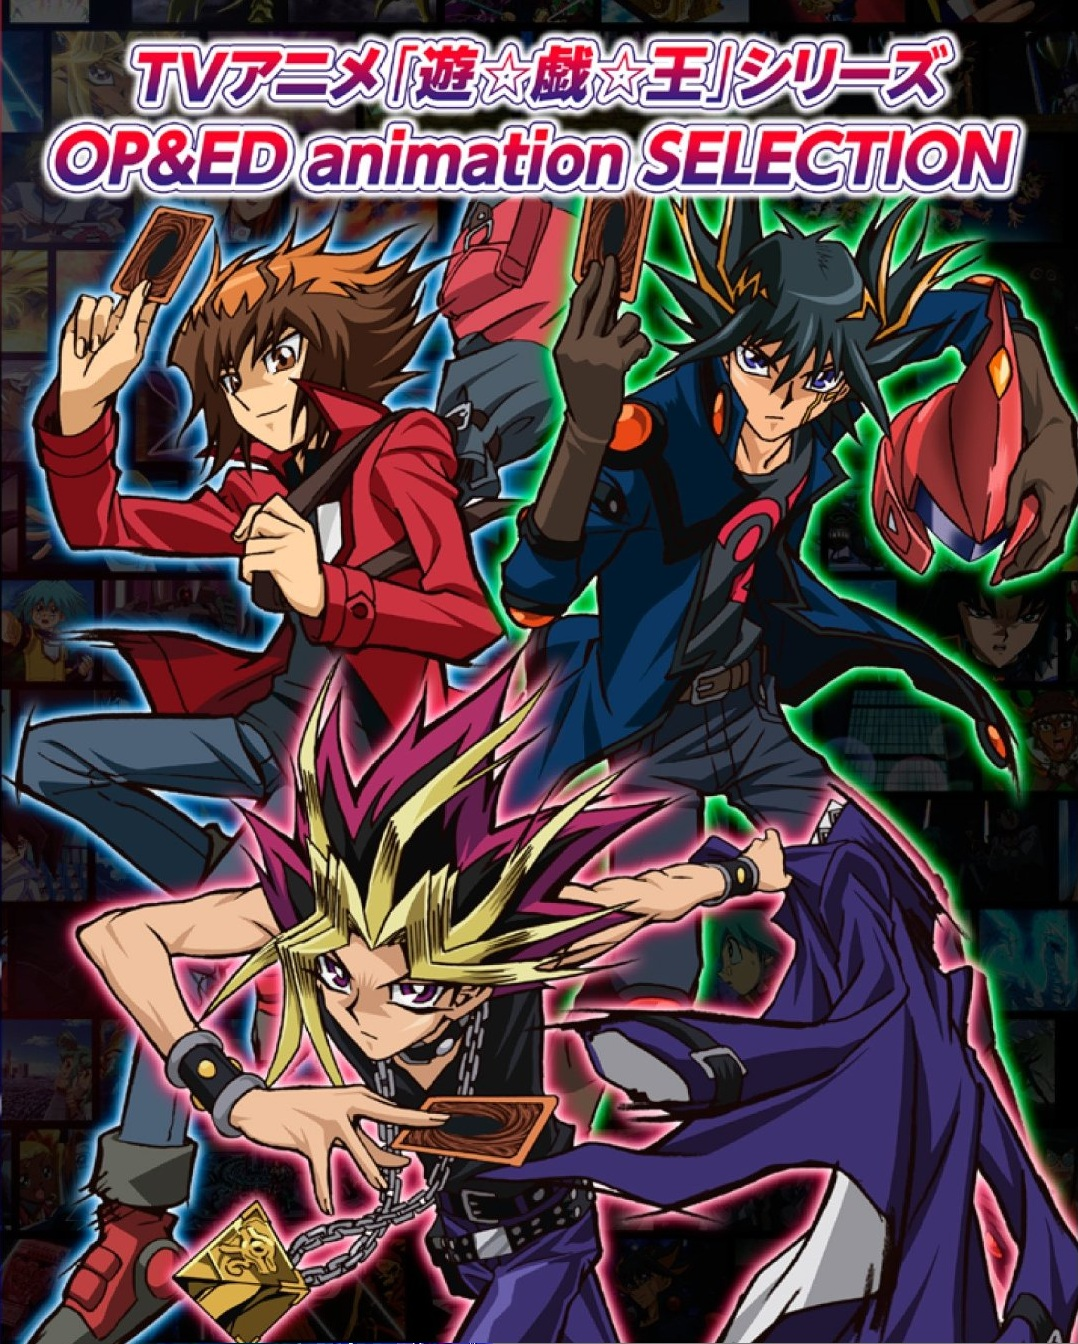 TV Size Yu-Gi-Oh! series OP&ED animation SELECTION